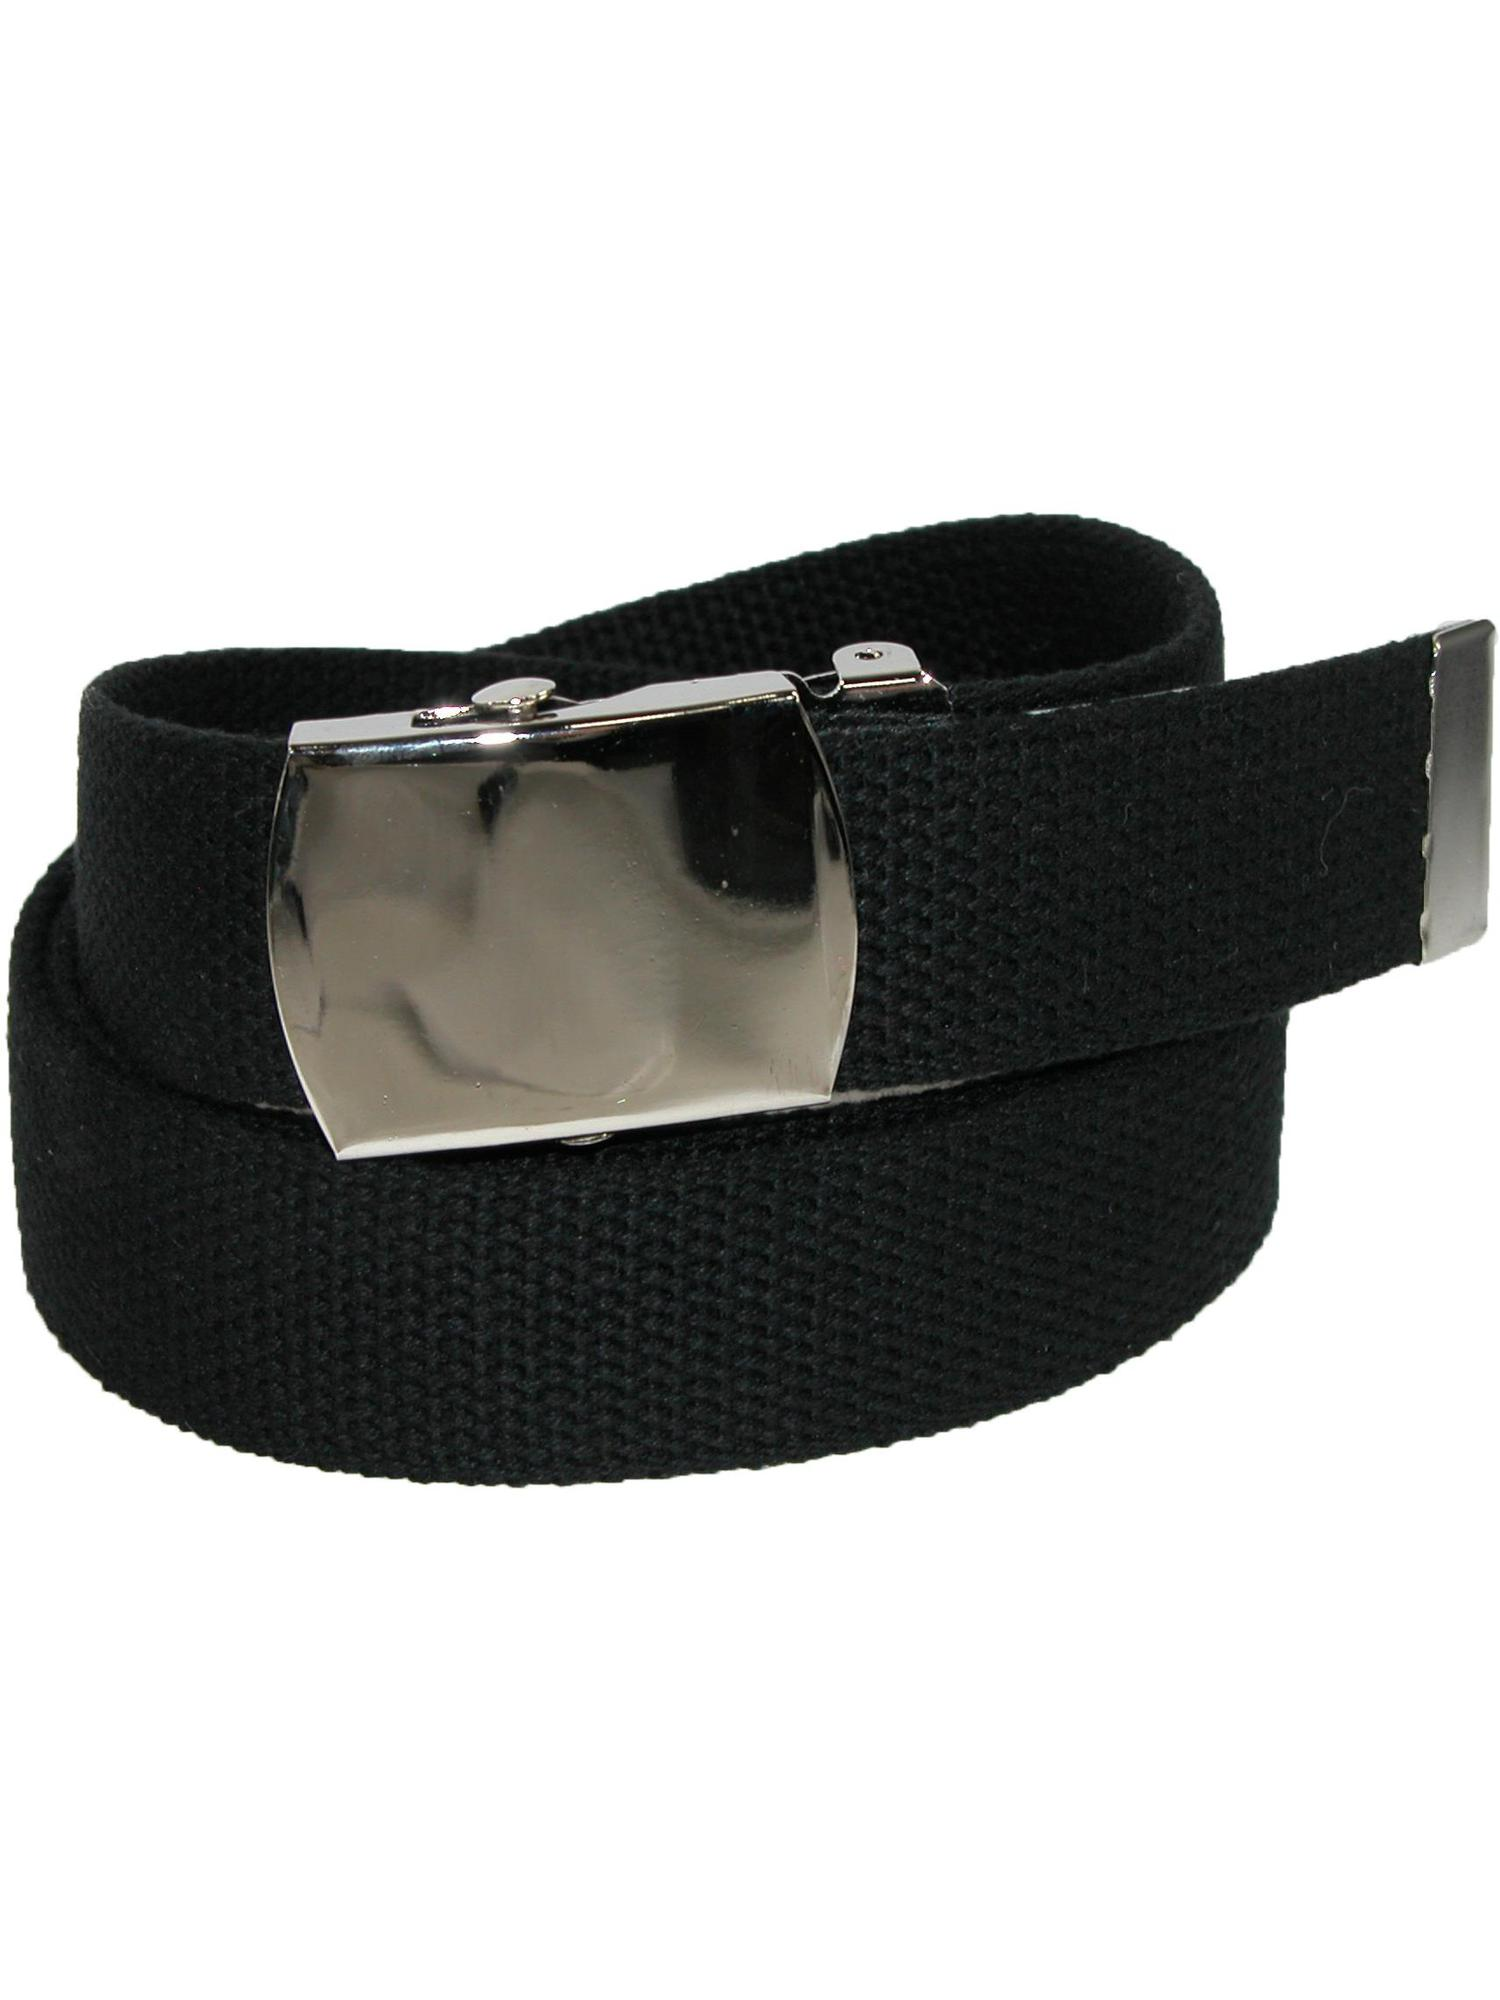 Size one size Big & Tall Cotton Belt with Nickel Finish Buckle (Pack of 3)